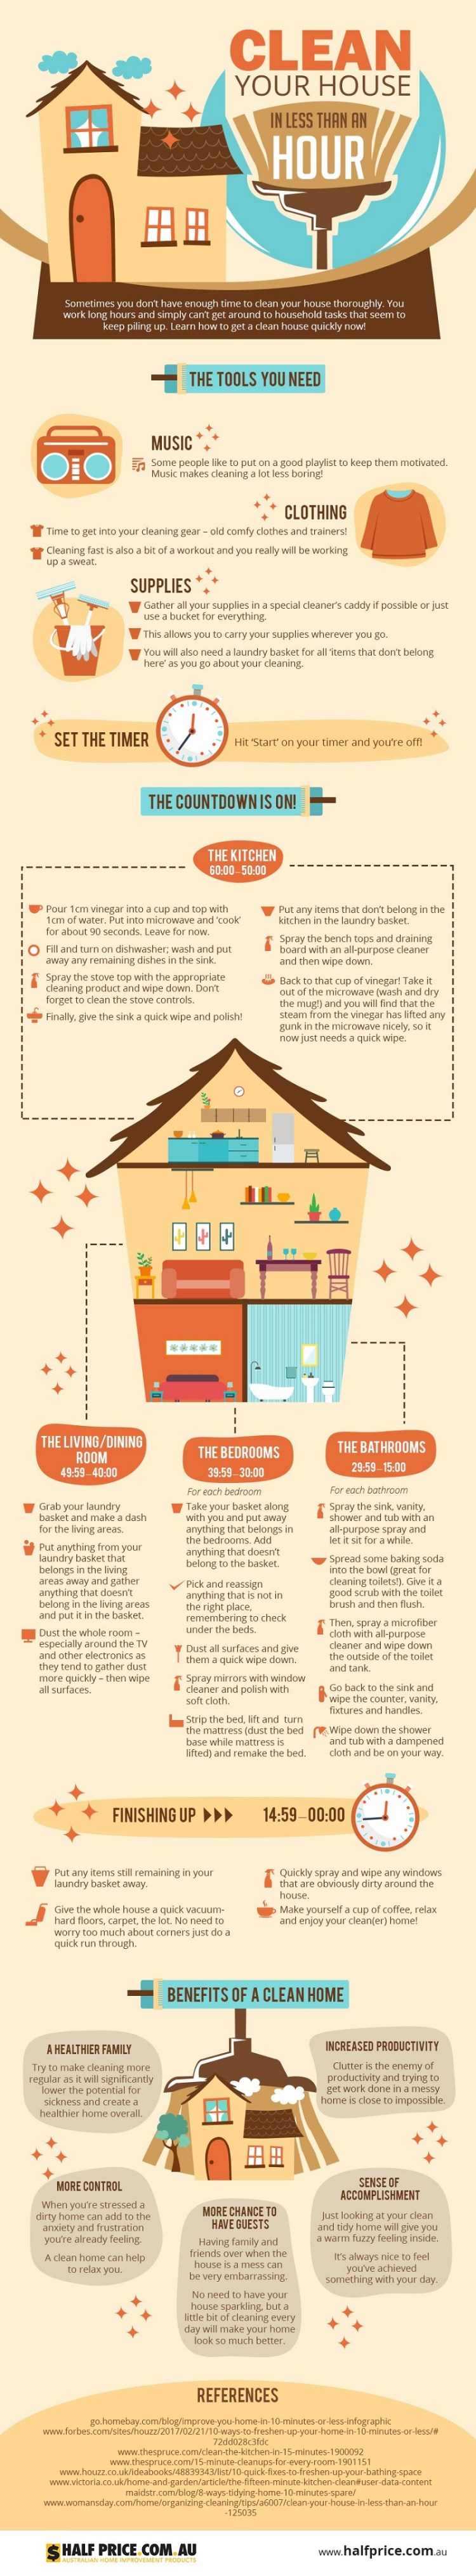 Clean Your Home in Less Than an Hour